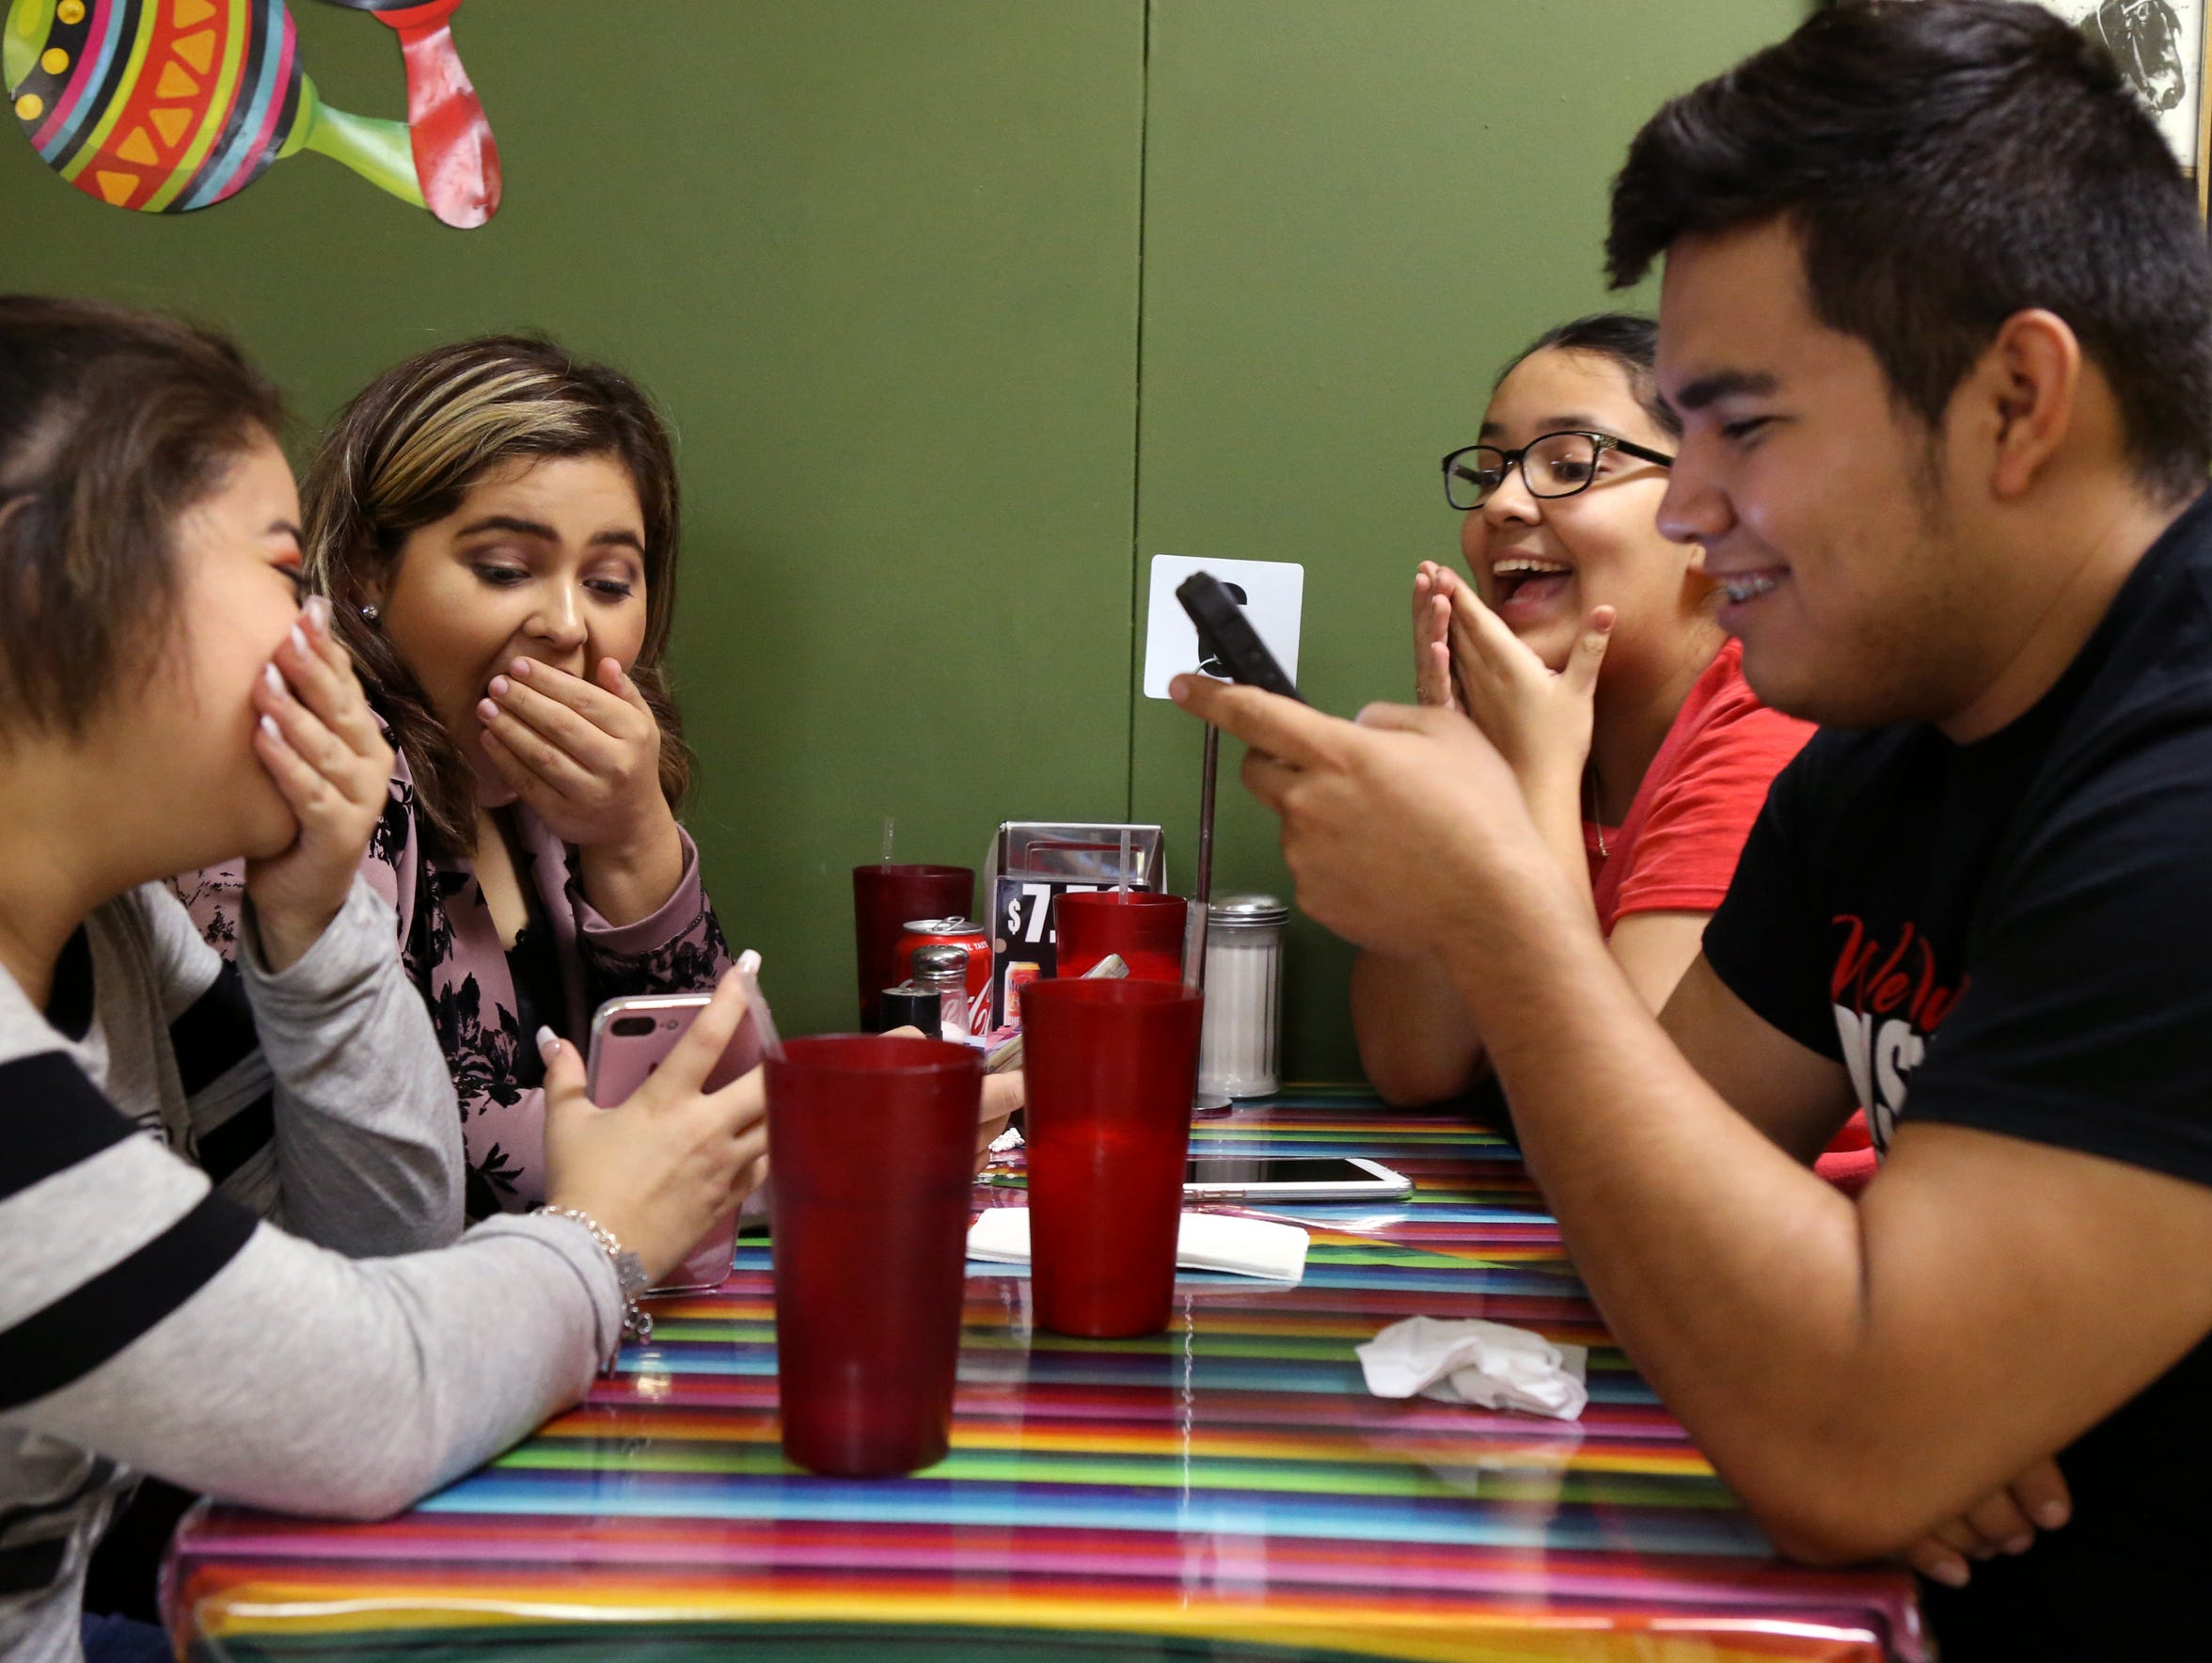 """Karen Barrera, 19, (clockwise from left), Claudia Jimenez, 19, Erica Jimenez, 17, and Sergio Alfaro, 19, hang out at To-Ce-Chi following the Ray High School homecoming Parade on October 23, 2017. """"I know I'm Mexican, and I know I live here, so sometimes I do feel like, I'm already here, I'm already a citizen,"""" Claudia said. """"But then, sometimes they remind you, no you're not a citizen, you're Mexican, you're an illegal Mexican. """""""